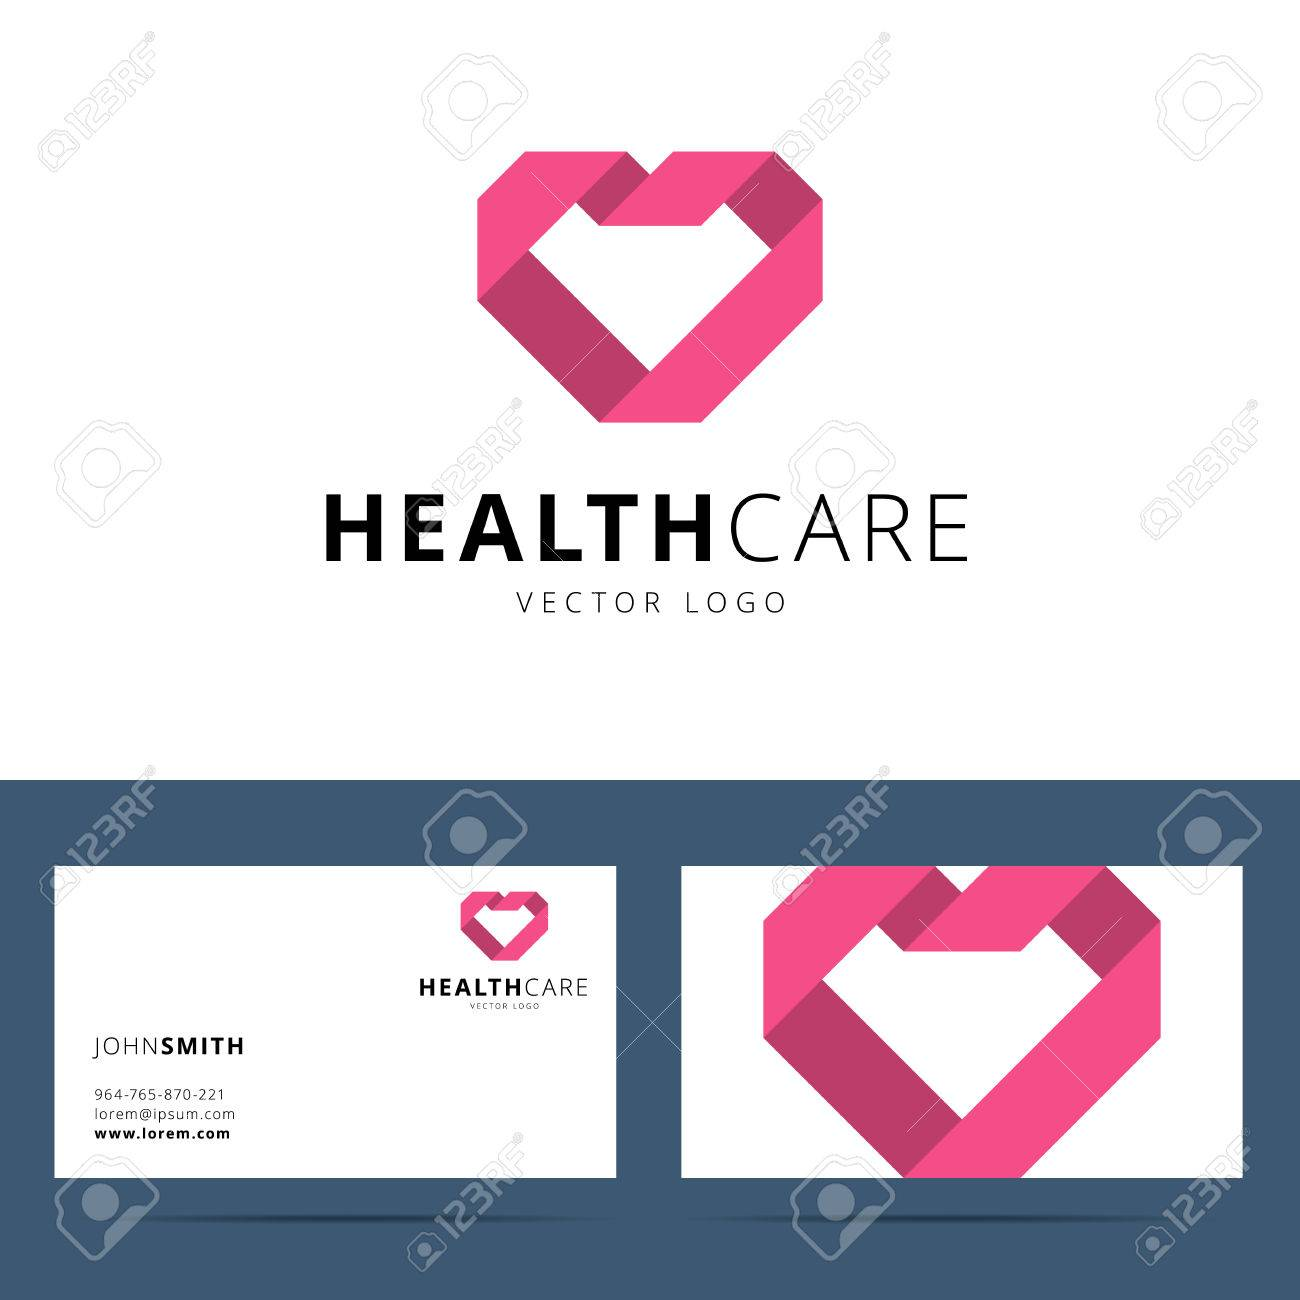 Health Care Vector Icon Template And Business Card Template With ...